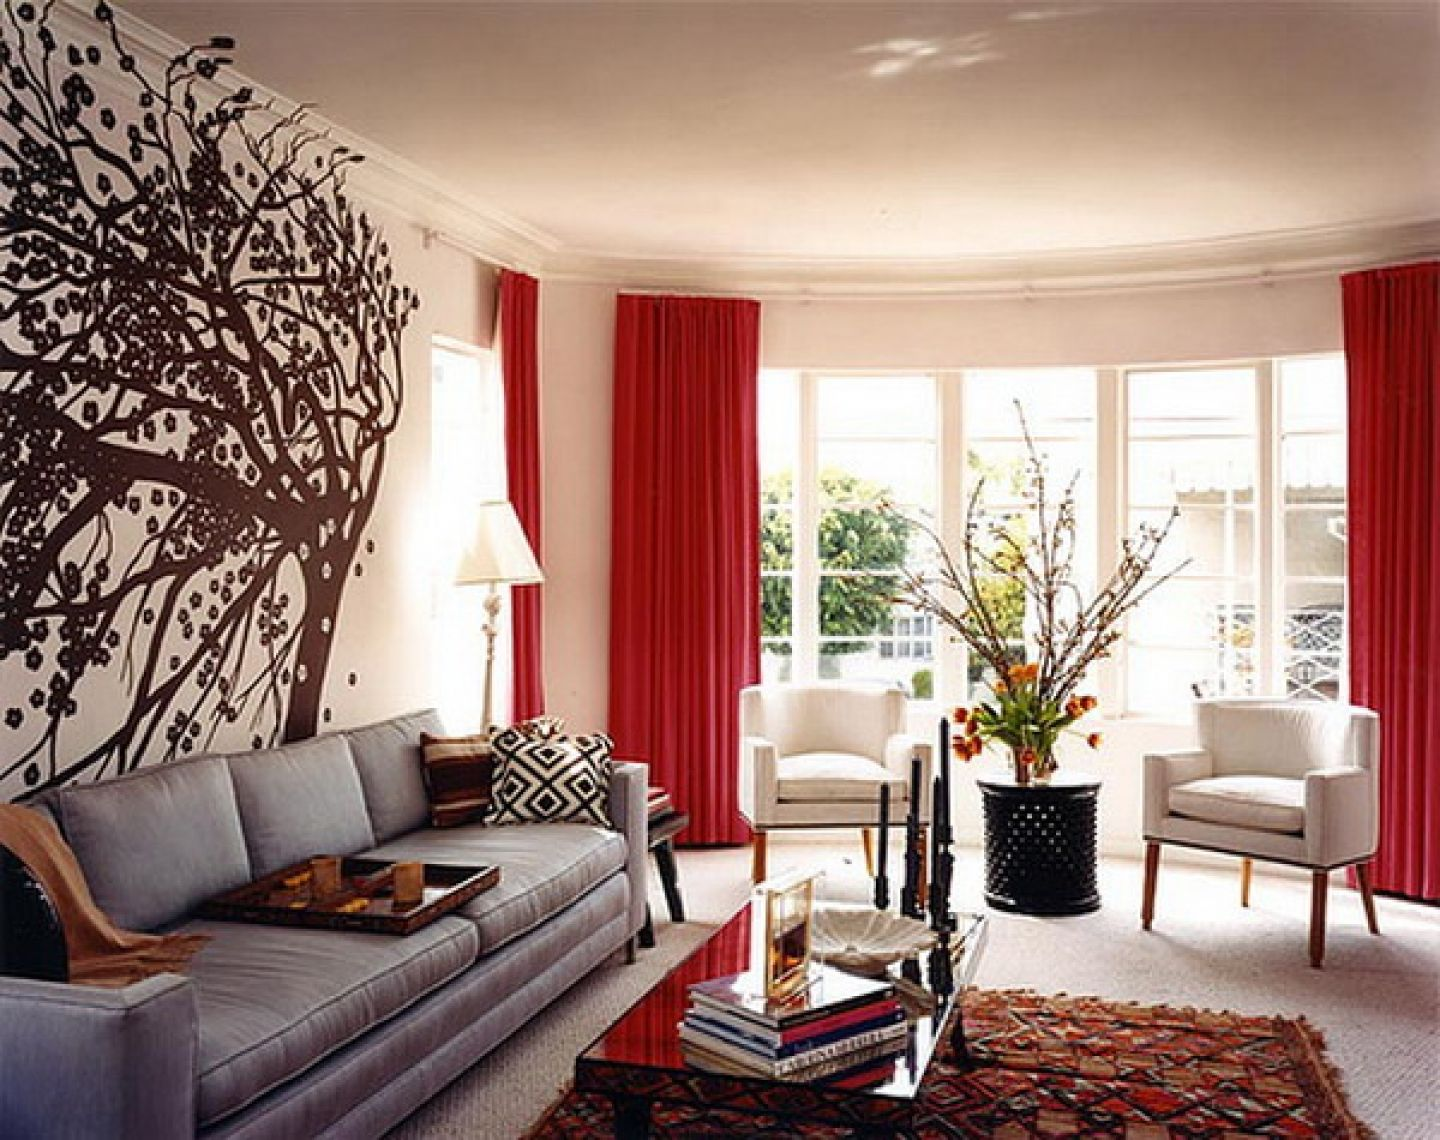 Decoration ~ Terrific Contemporary Red Wall Room Ideas With White ...